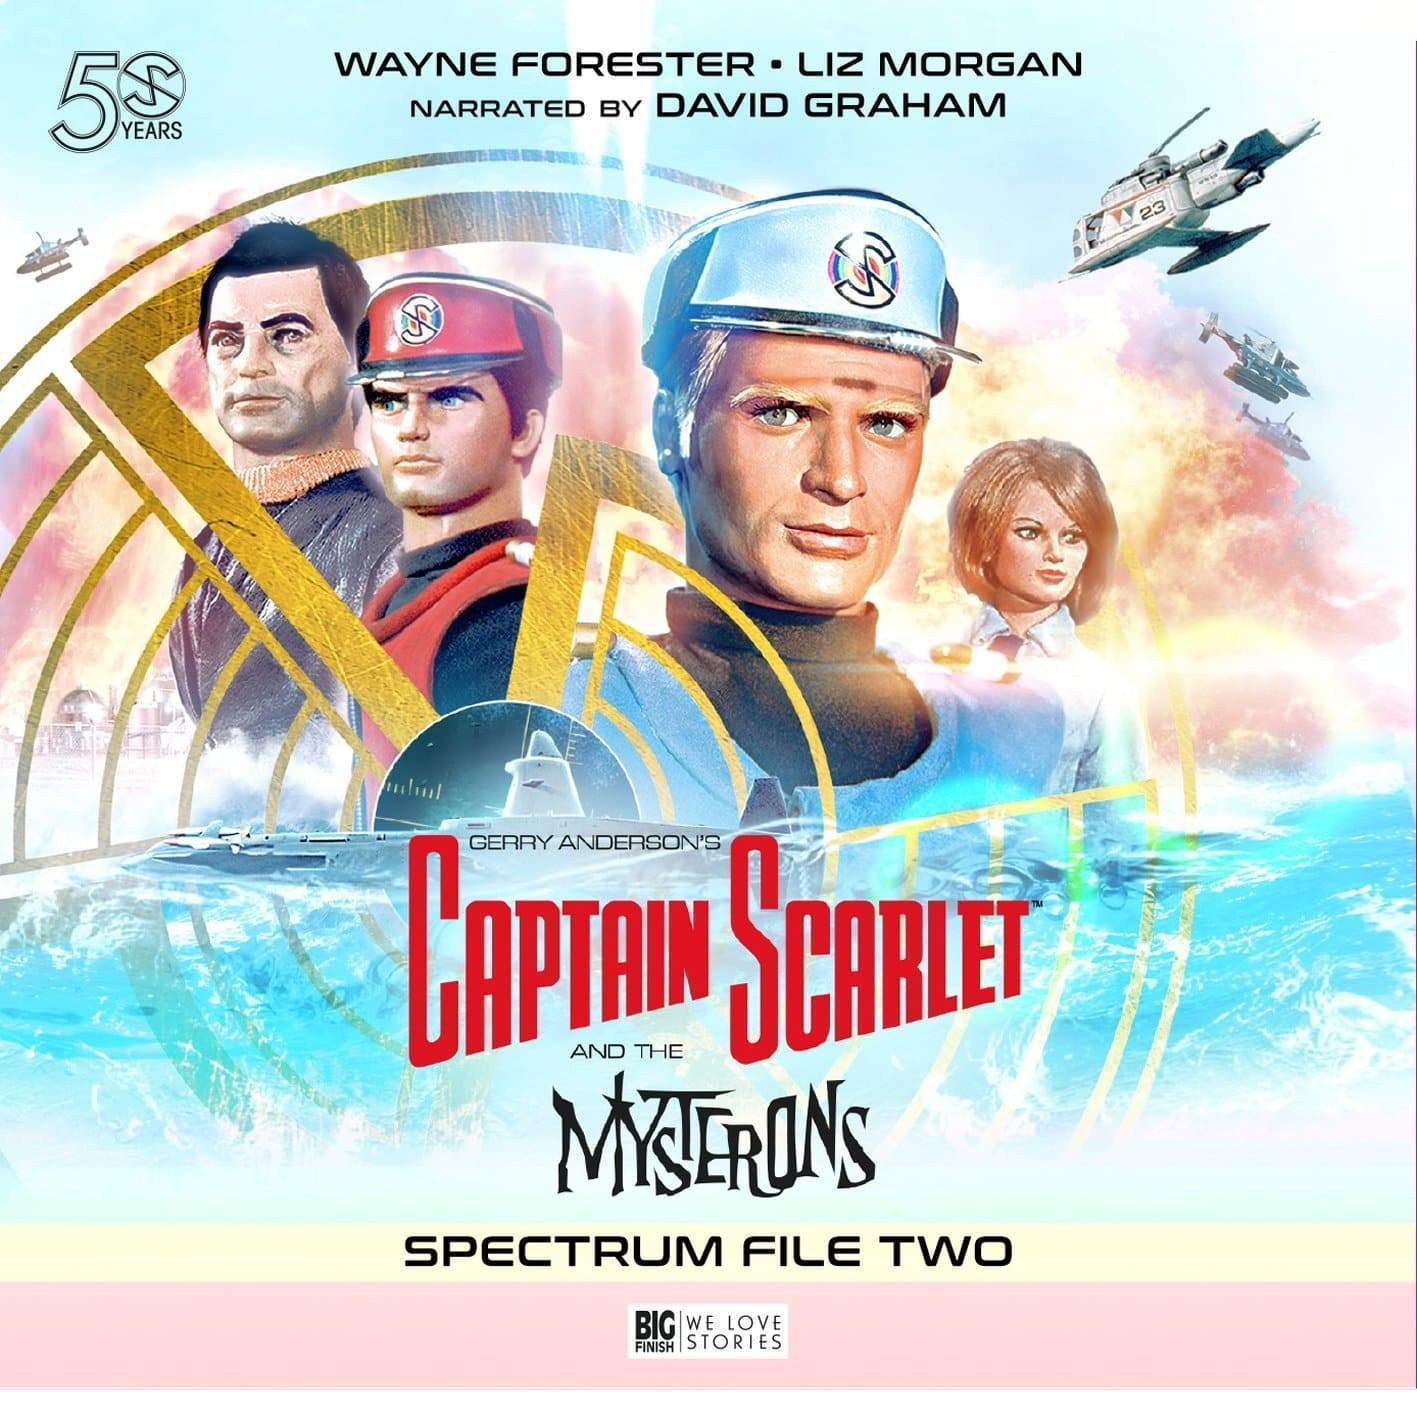 Captain Scarlet - Spectrum File 2 [DOWNLOAD] - The Gerry Anderson Store